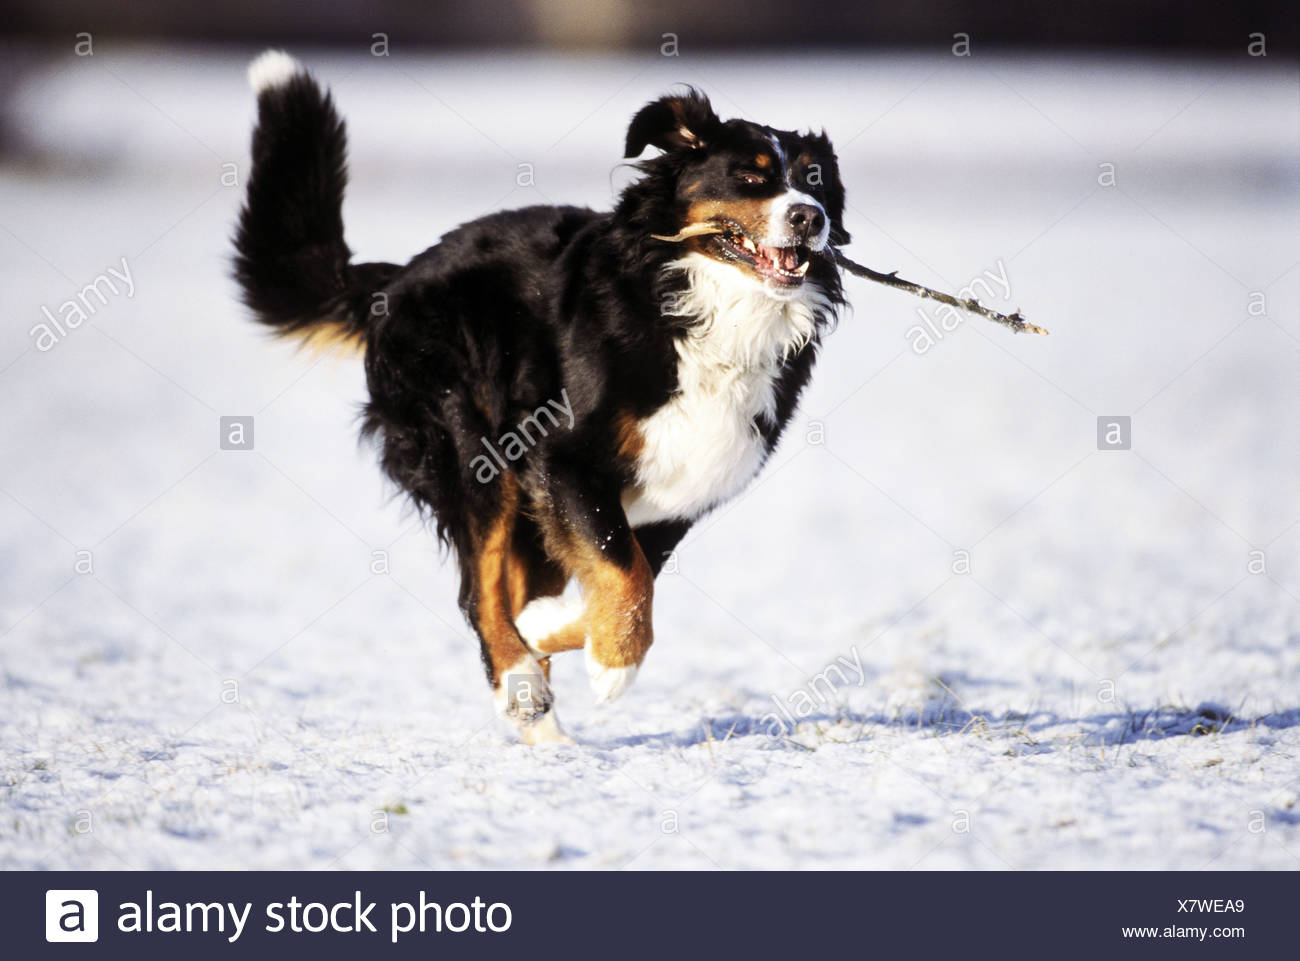 Bernese mountain dog running on snow with stick in muzzle - Stock Image